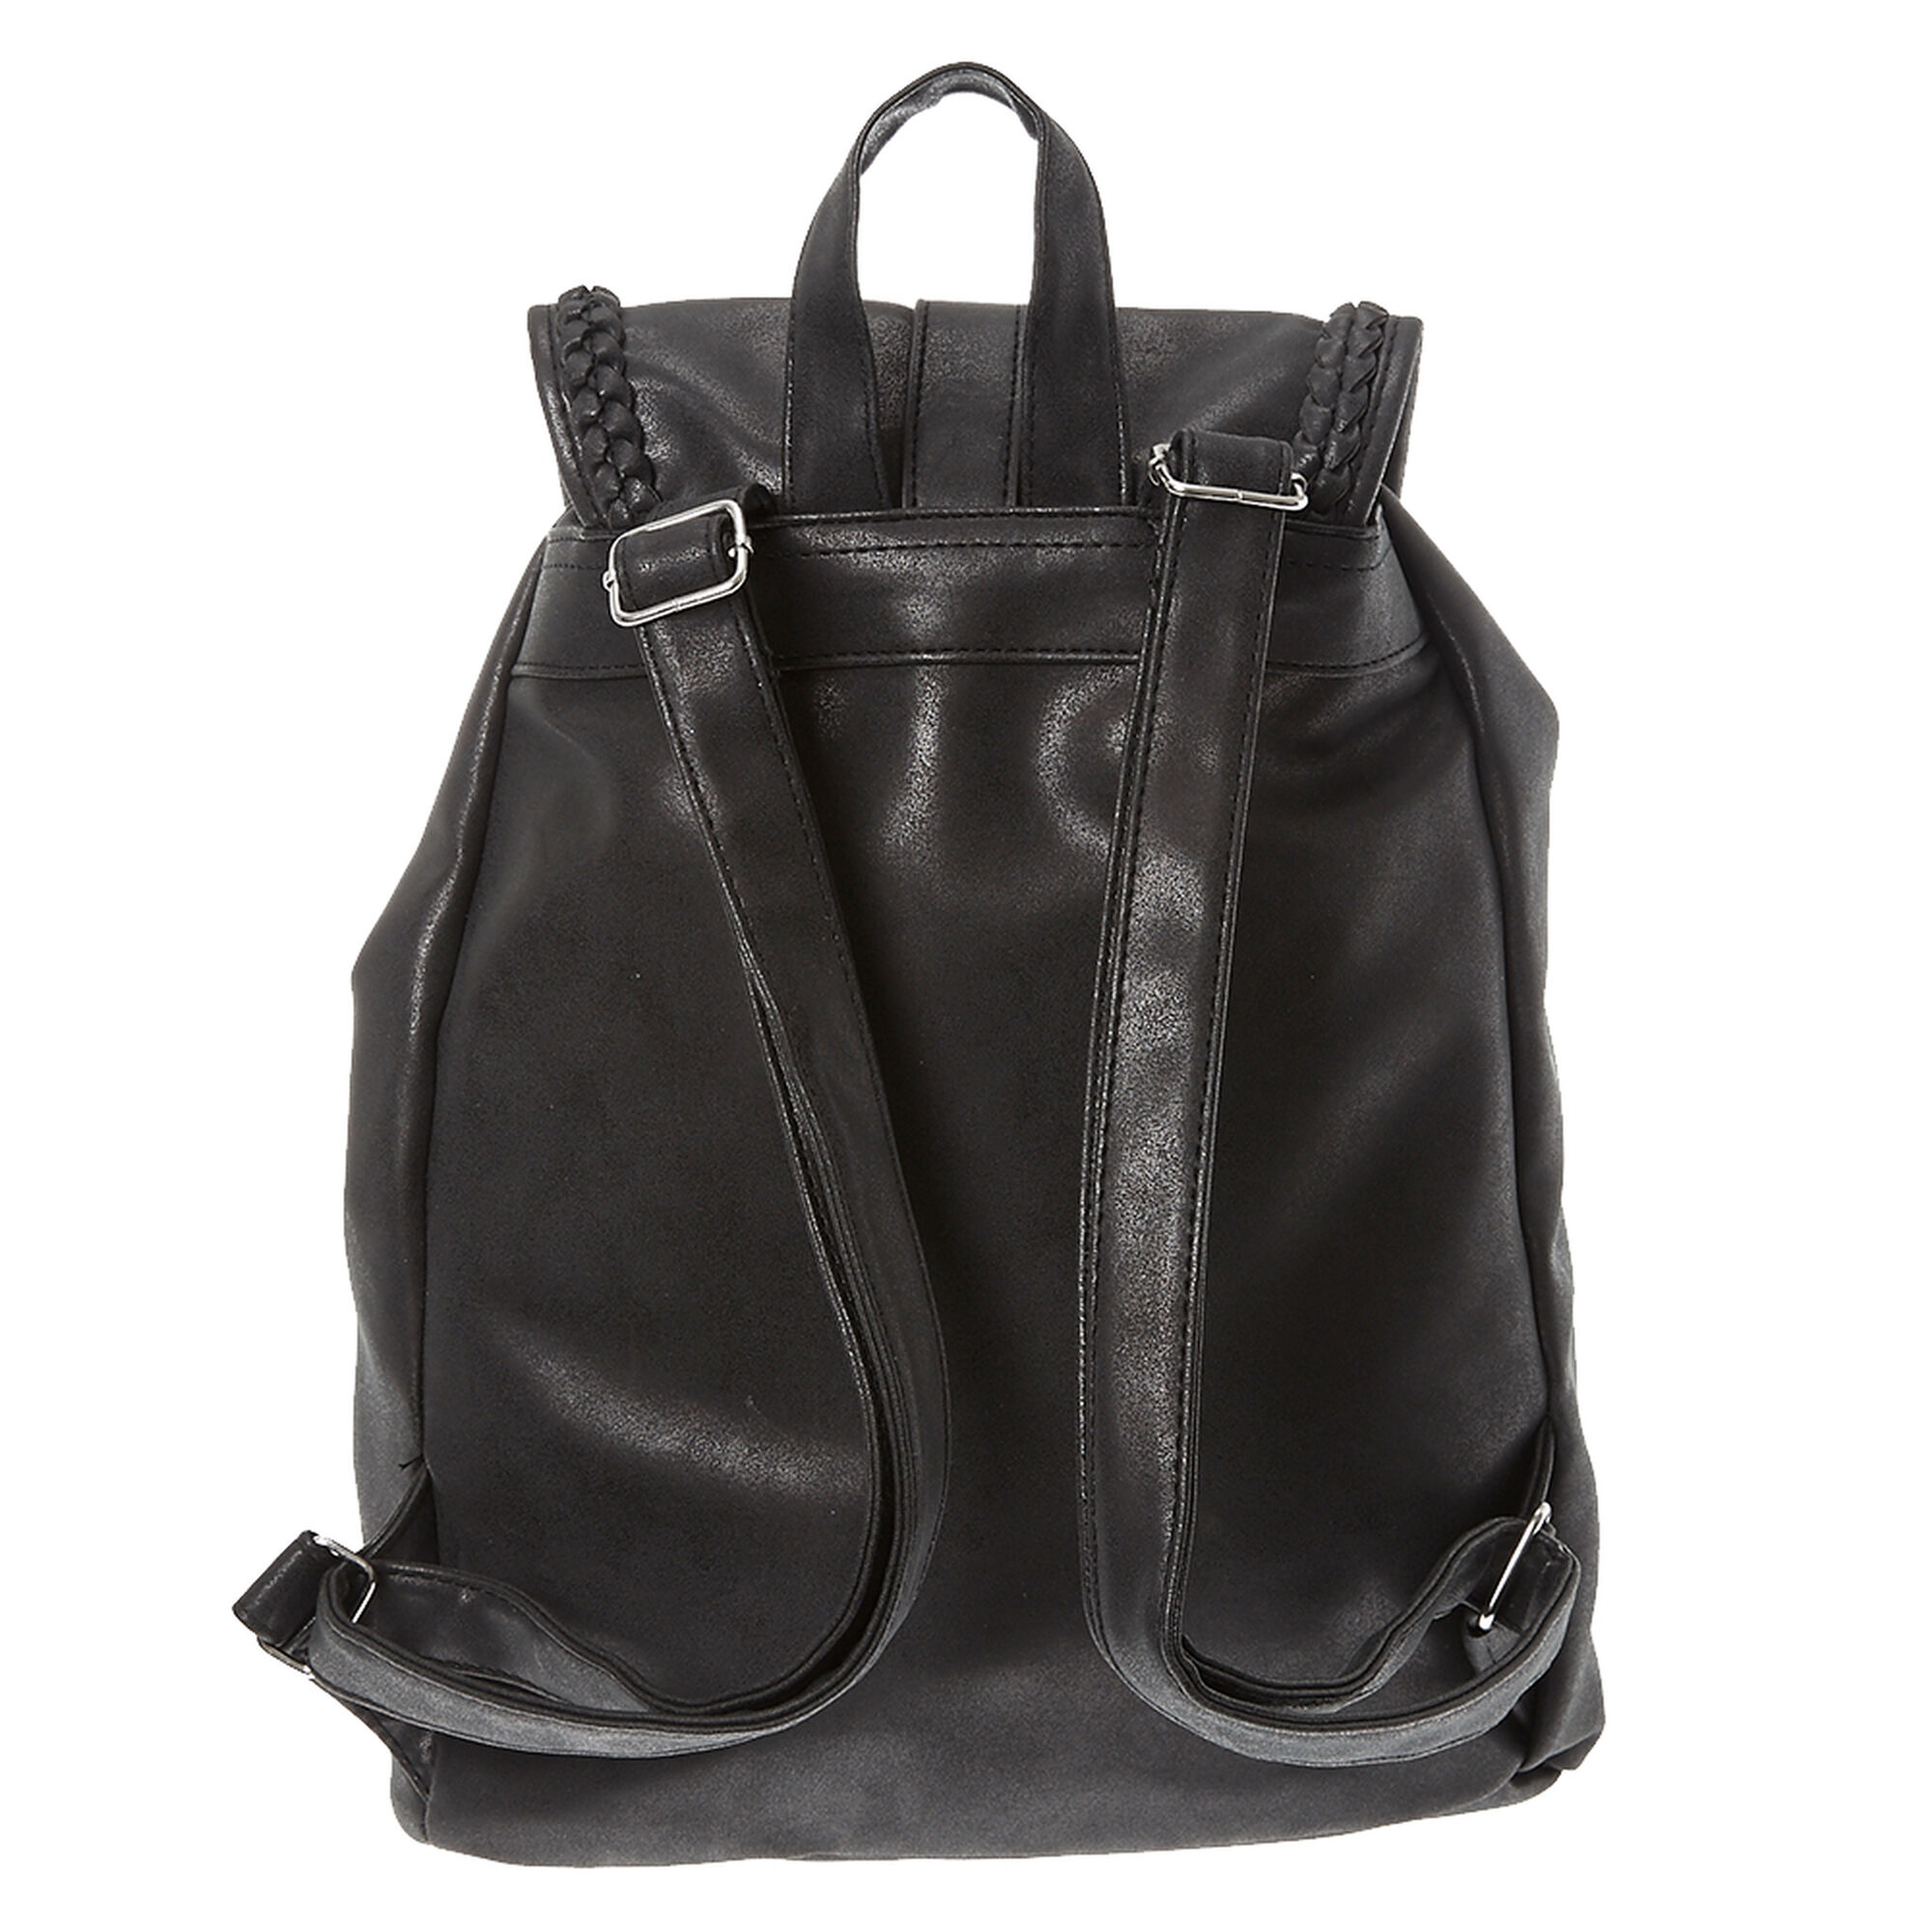 Black Faux Leather Braided Backpack | Claire's US